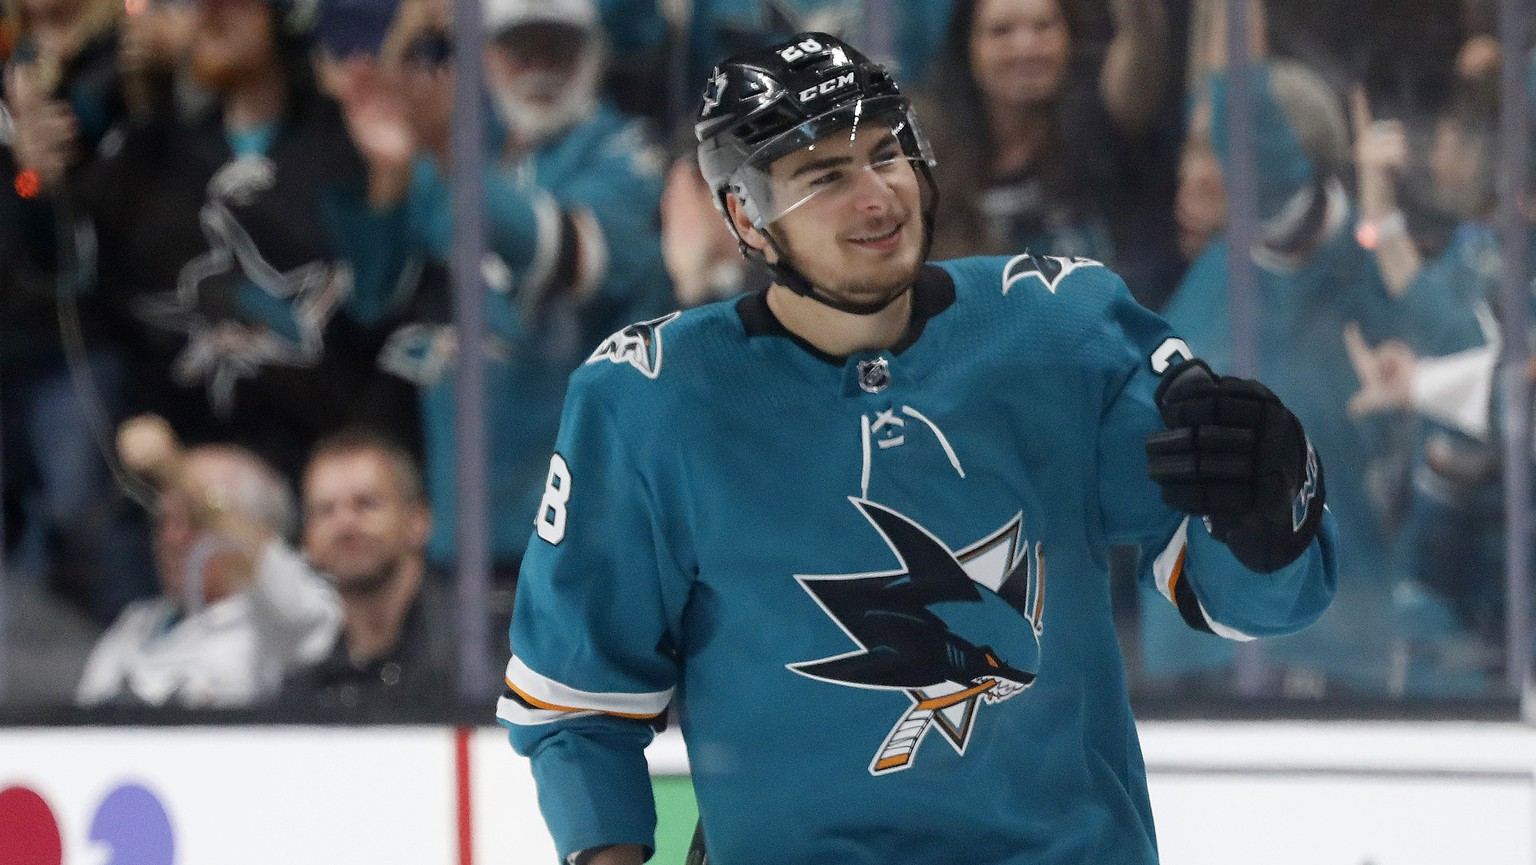 San Jose Sharks' Timo Meier celebrates a goal against the St. Louis Blues in the second period in Game 1 of the NHL hockey Stanley Cup Western Conference finals in San Jose, Calif., Saturday, May 11, 2019. (AP Photo/Josie Lepe)